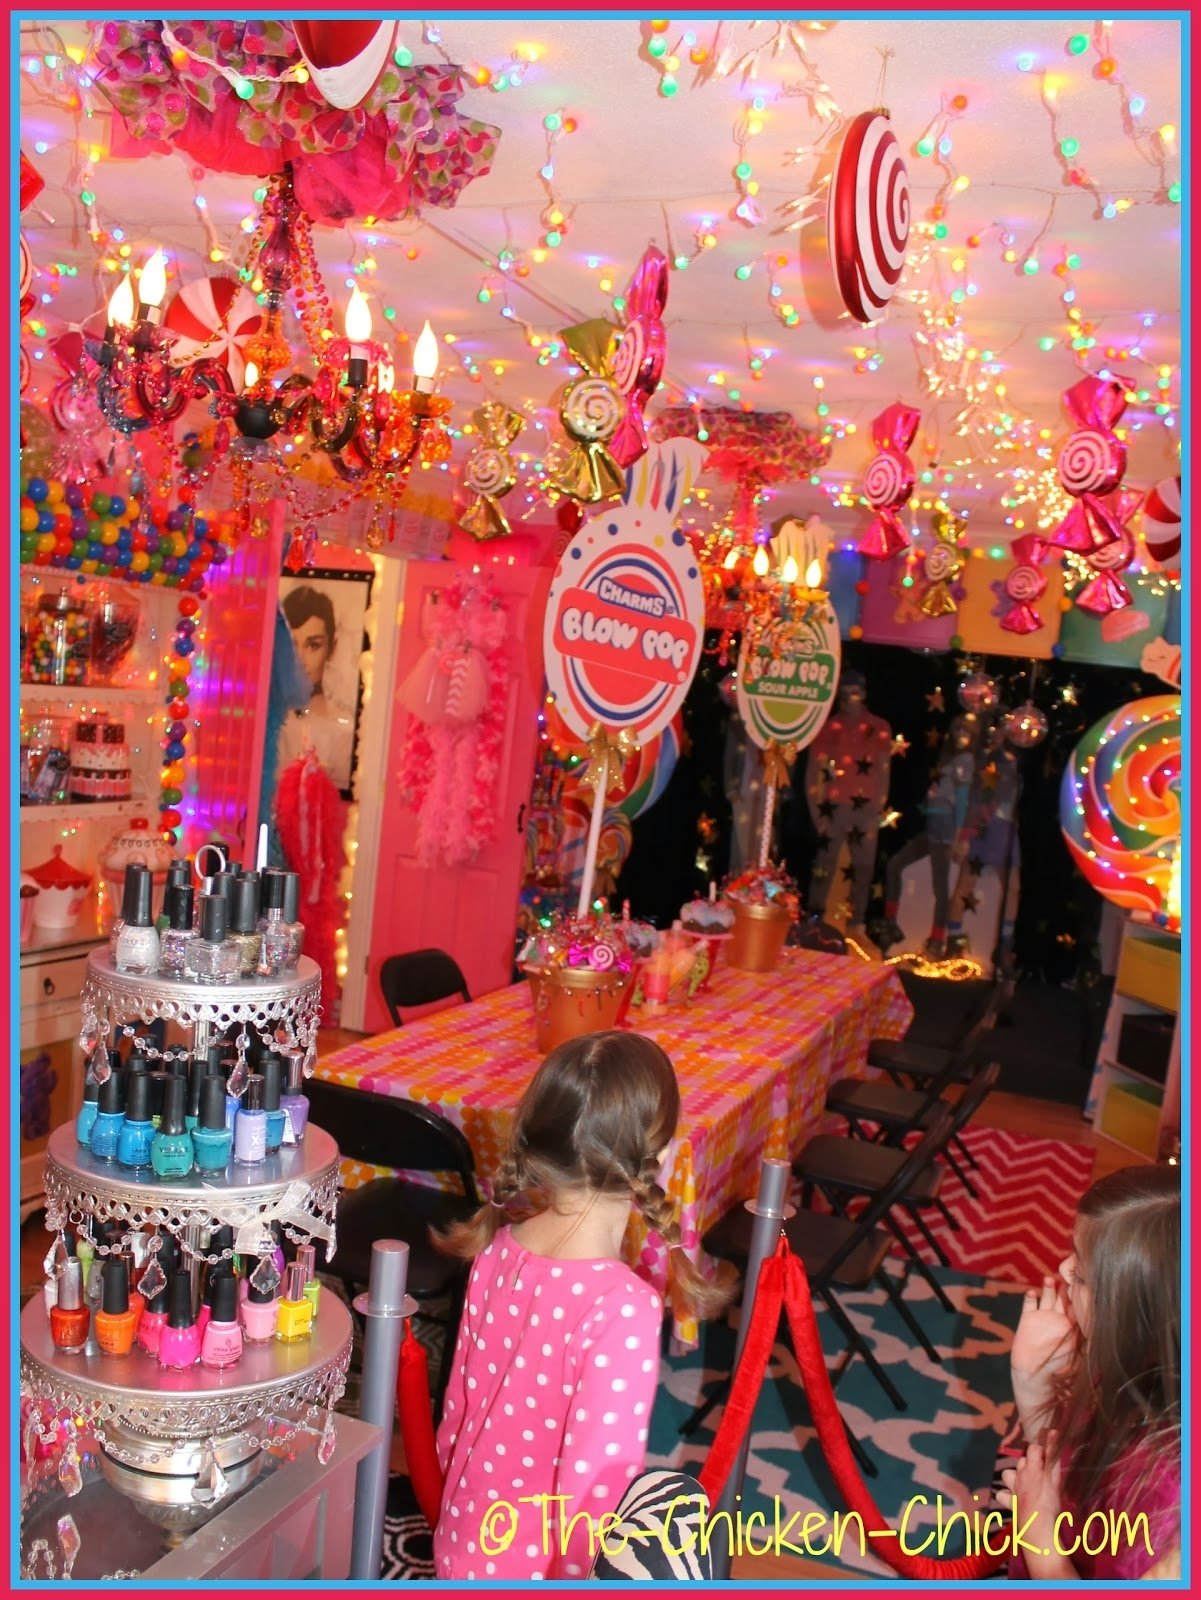 10 Best 10 Year Old Party Ideas spa birthday party ideas for 7 year olds pool design ideas 9 2021